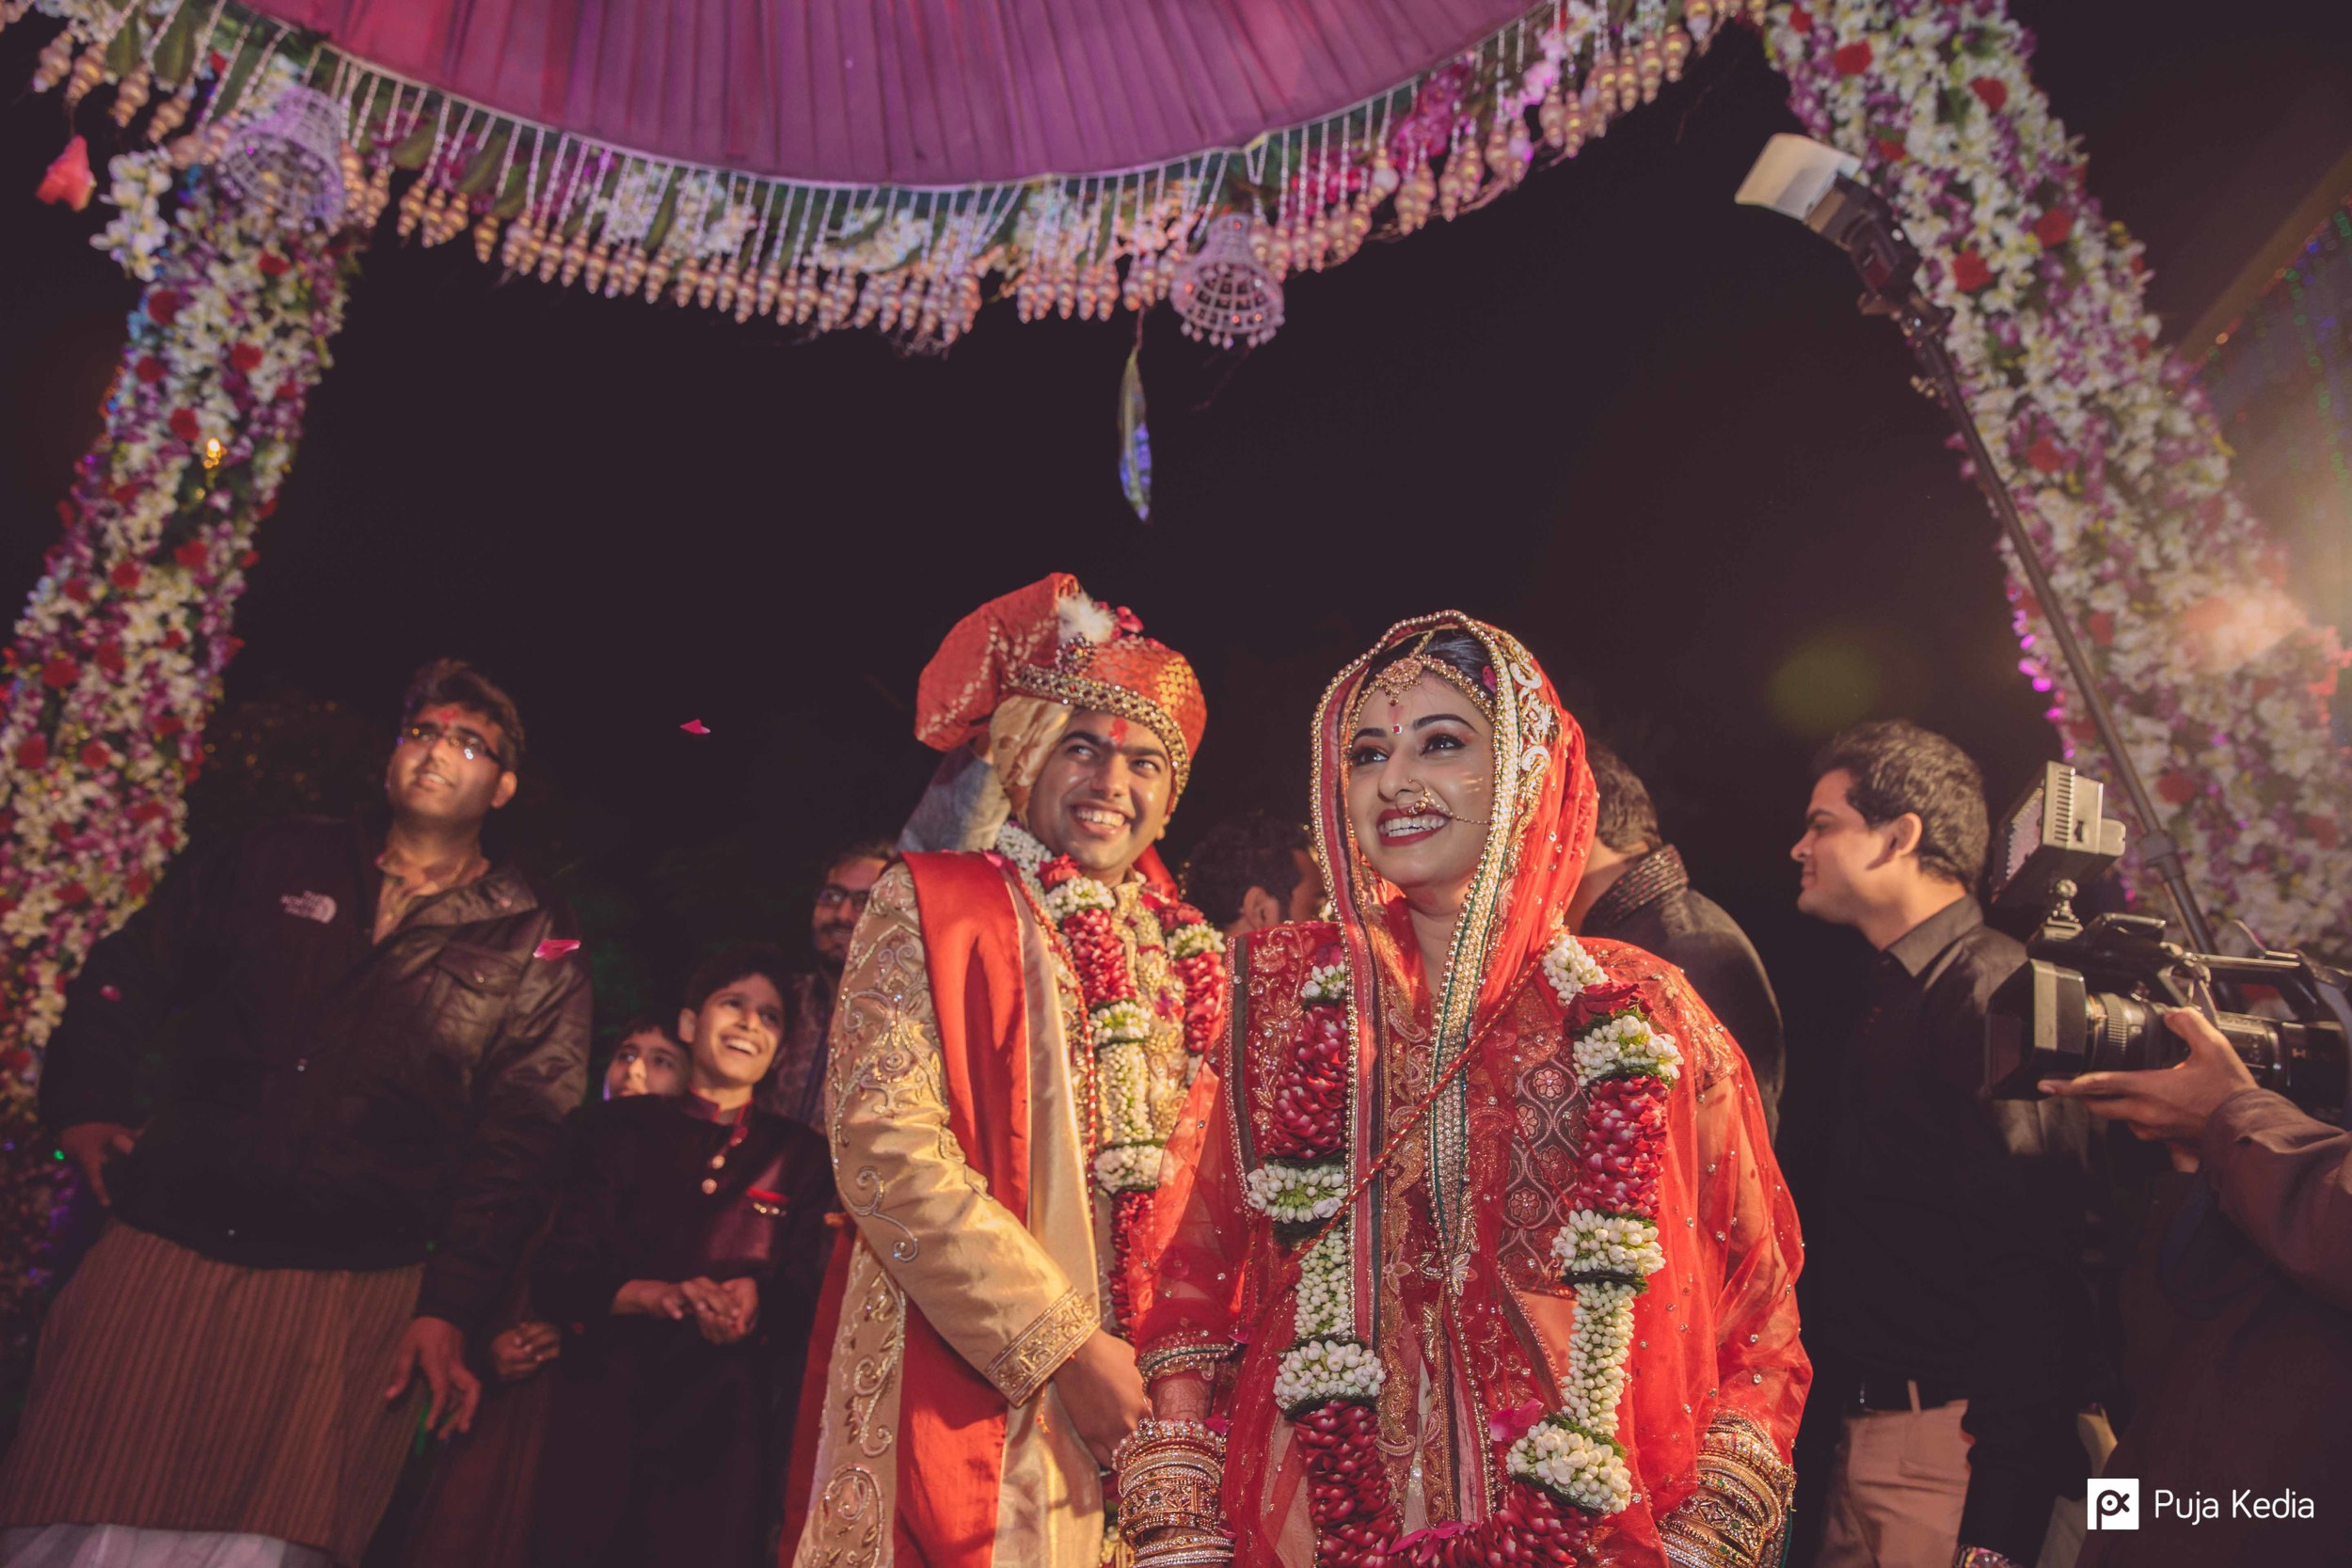 The groom also recites mantras which express his heart's desire and seeks the loving support of his wife.